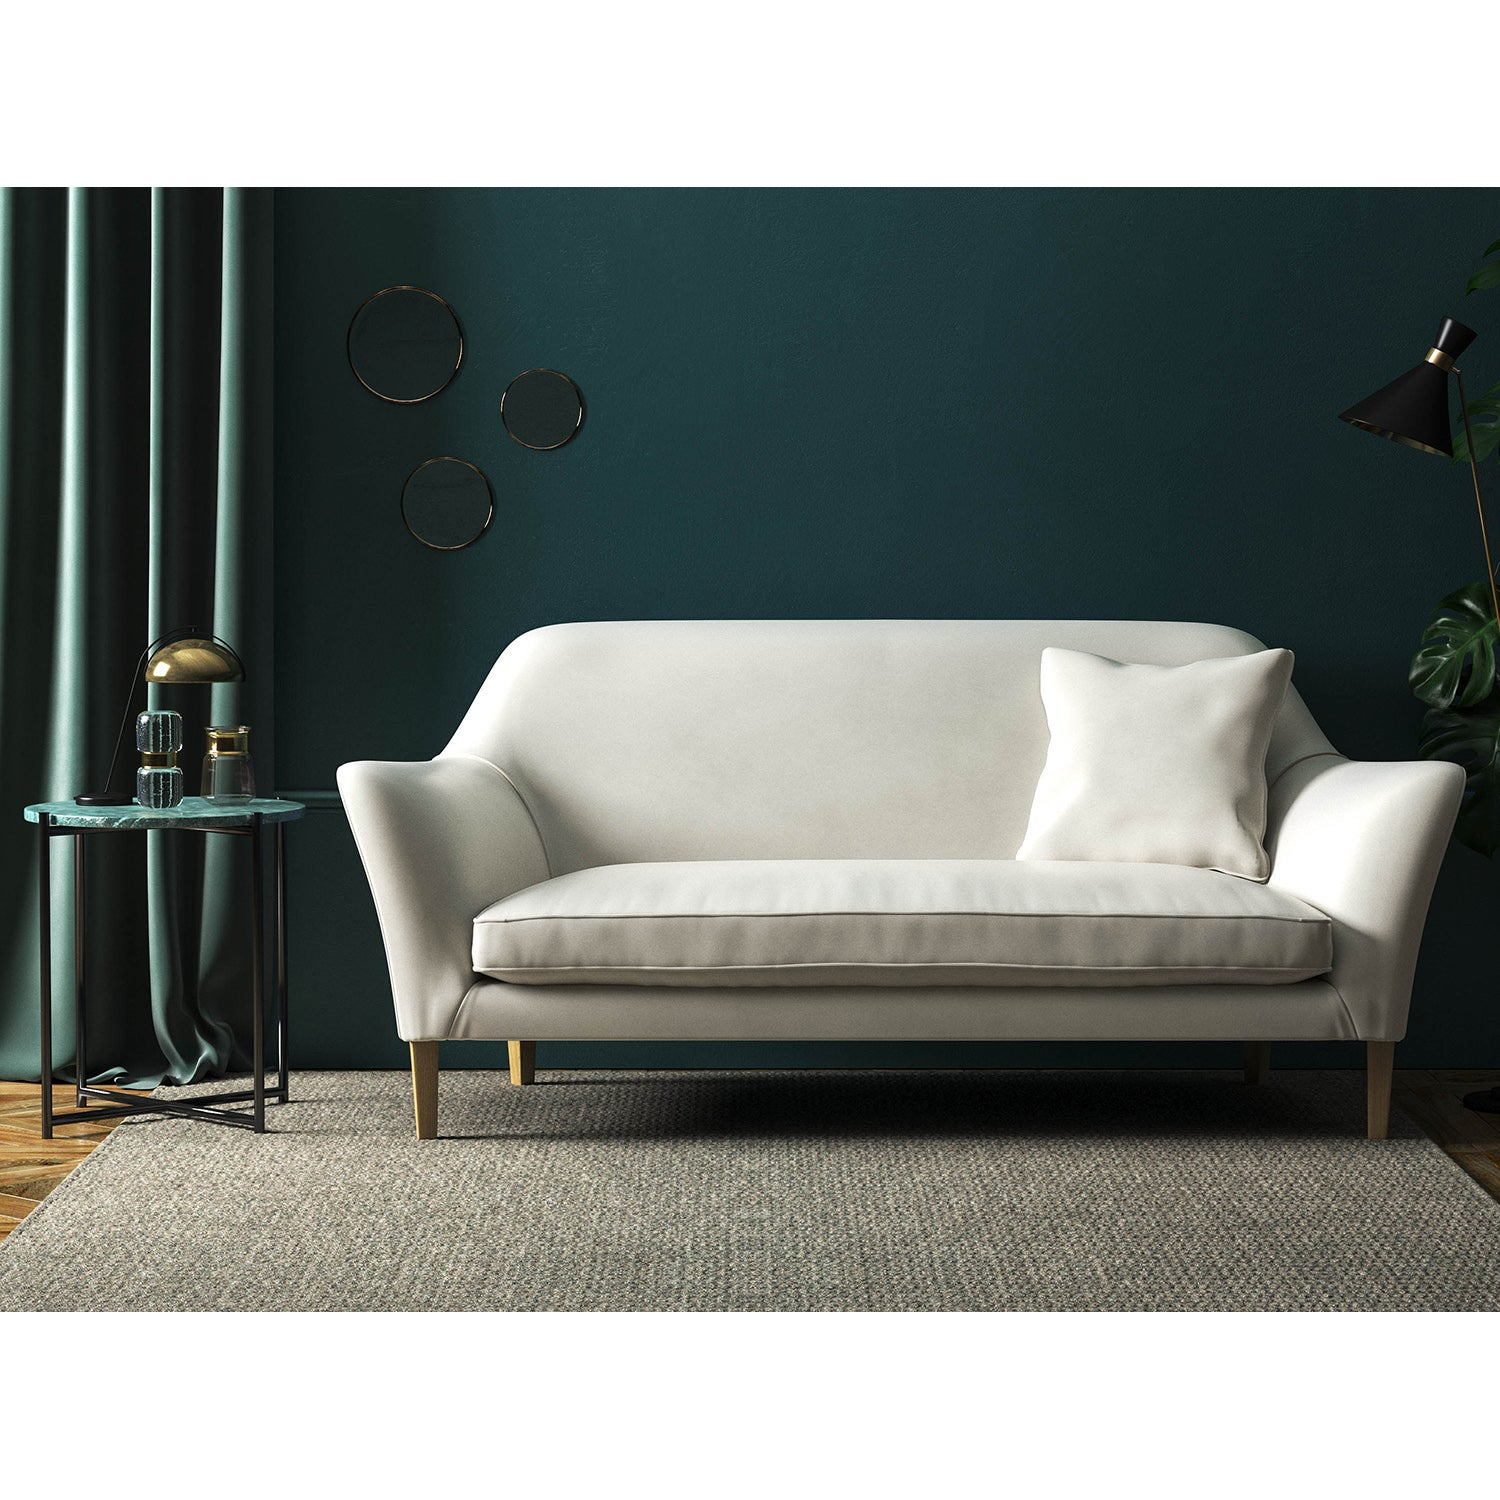 White velvet sofa with a stain resistant finish